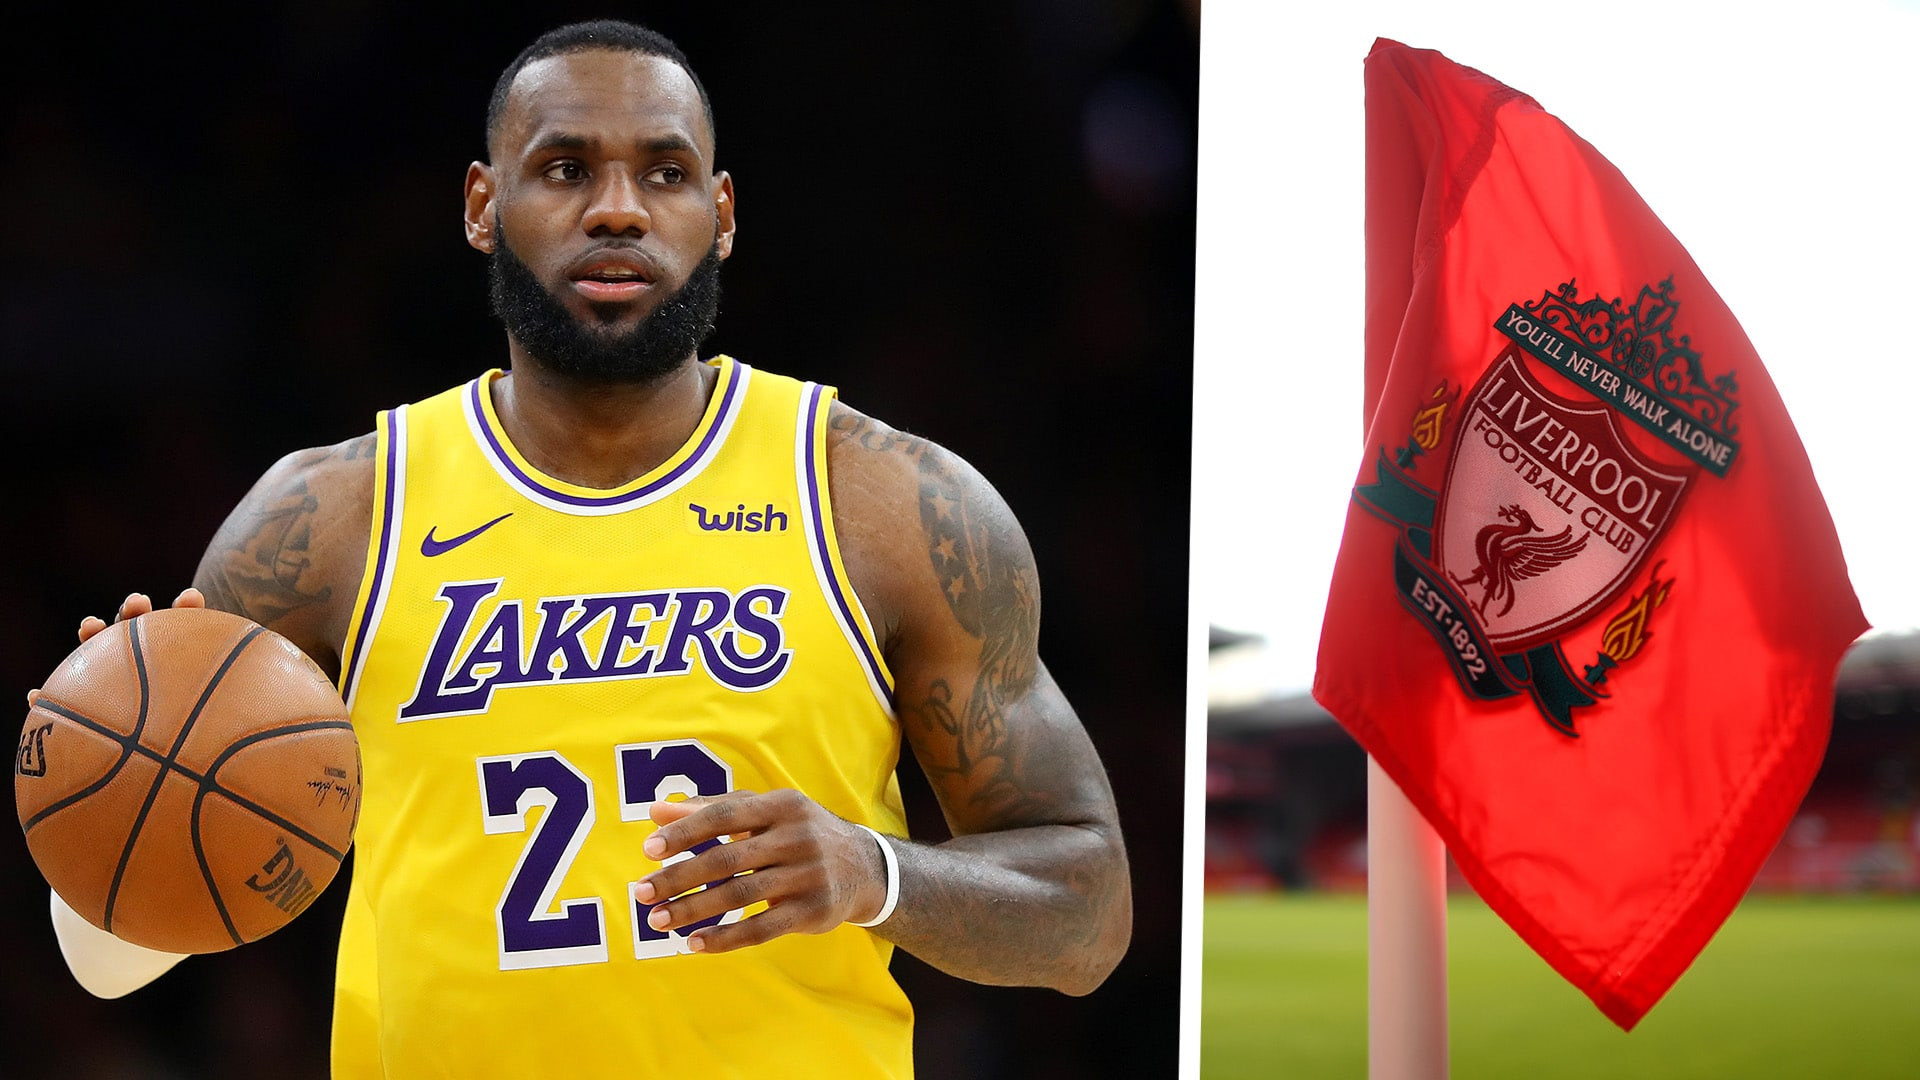 lebron-james-and-liverpool-the-la-lakers-superstars-premier-league-funding-defined.jpg